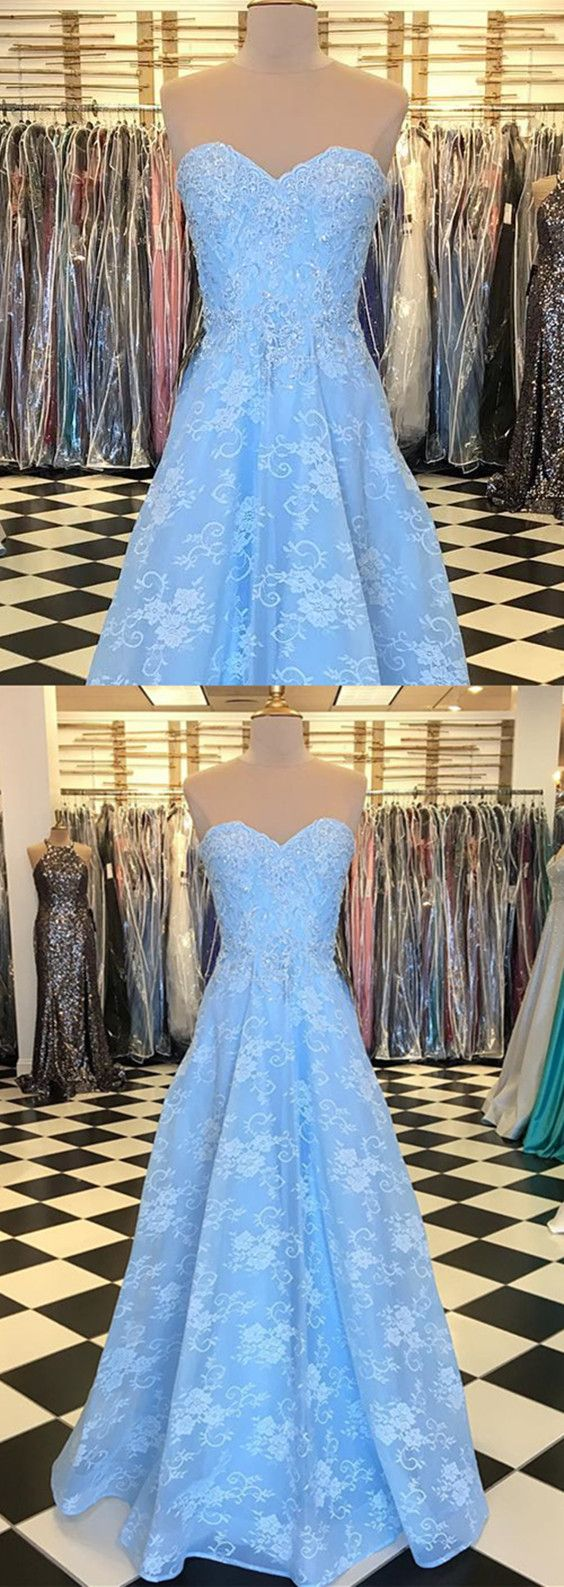 Elegant Baby Blue Sweetheart Long Lace Prom Dresses 2018 Formal Gowns